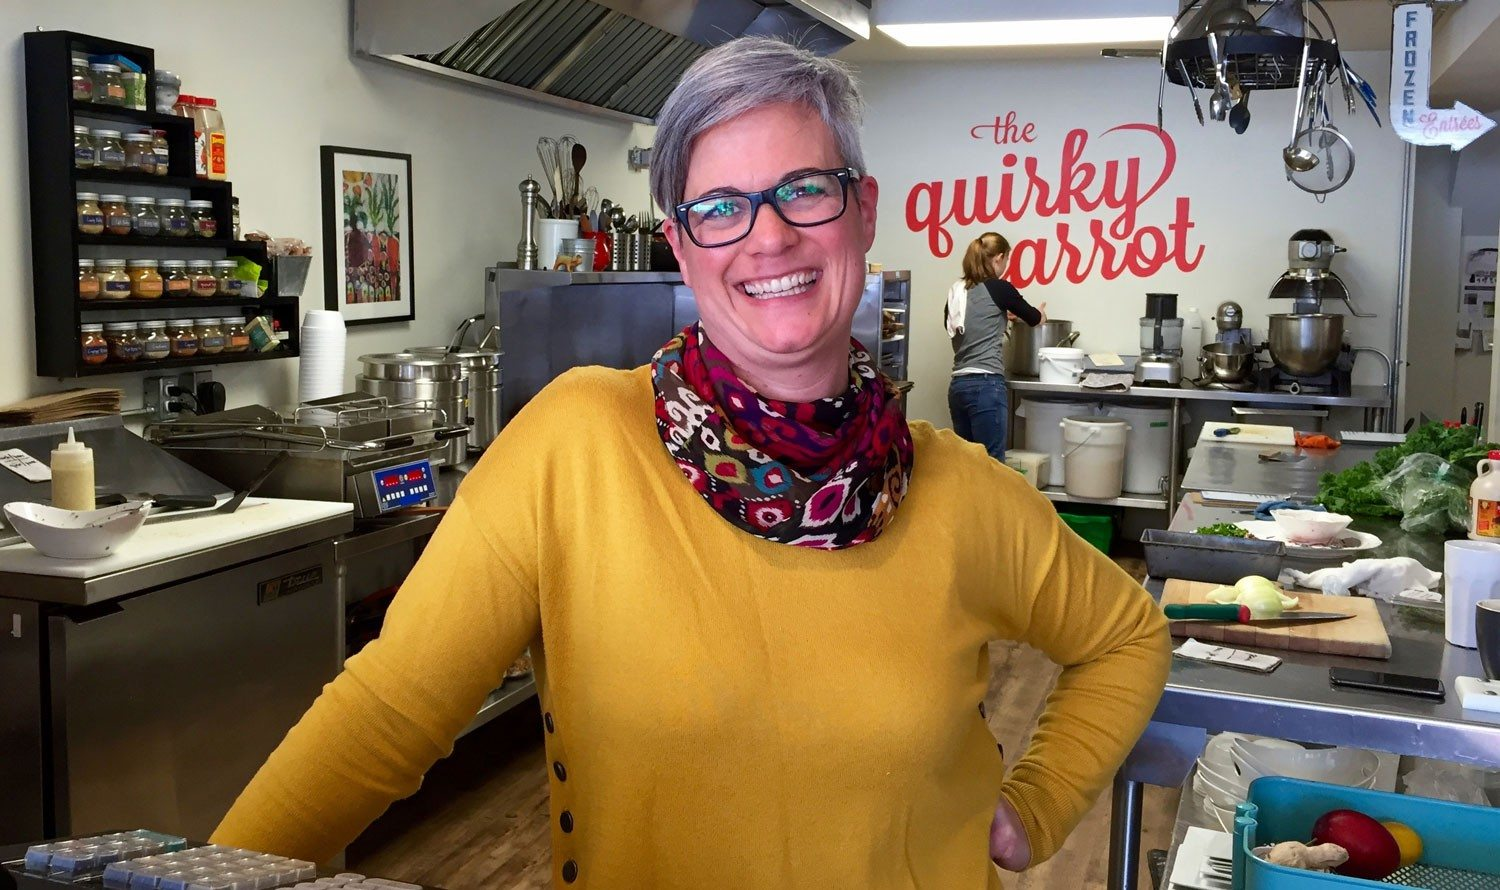 DesBrisay Dines: The Quirky Carrot